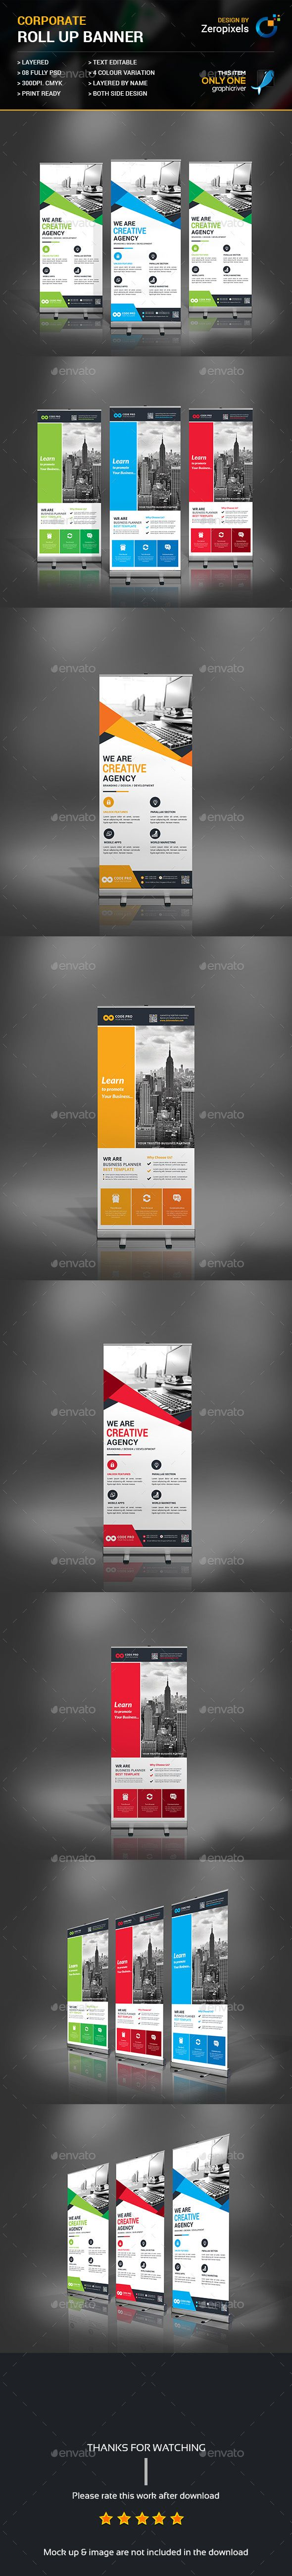 Corporate Rollup Banner Templates PSD Bundle